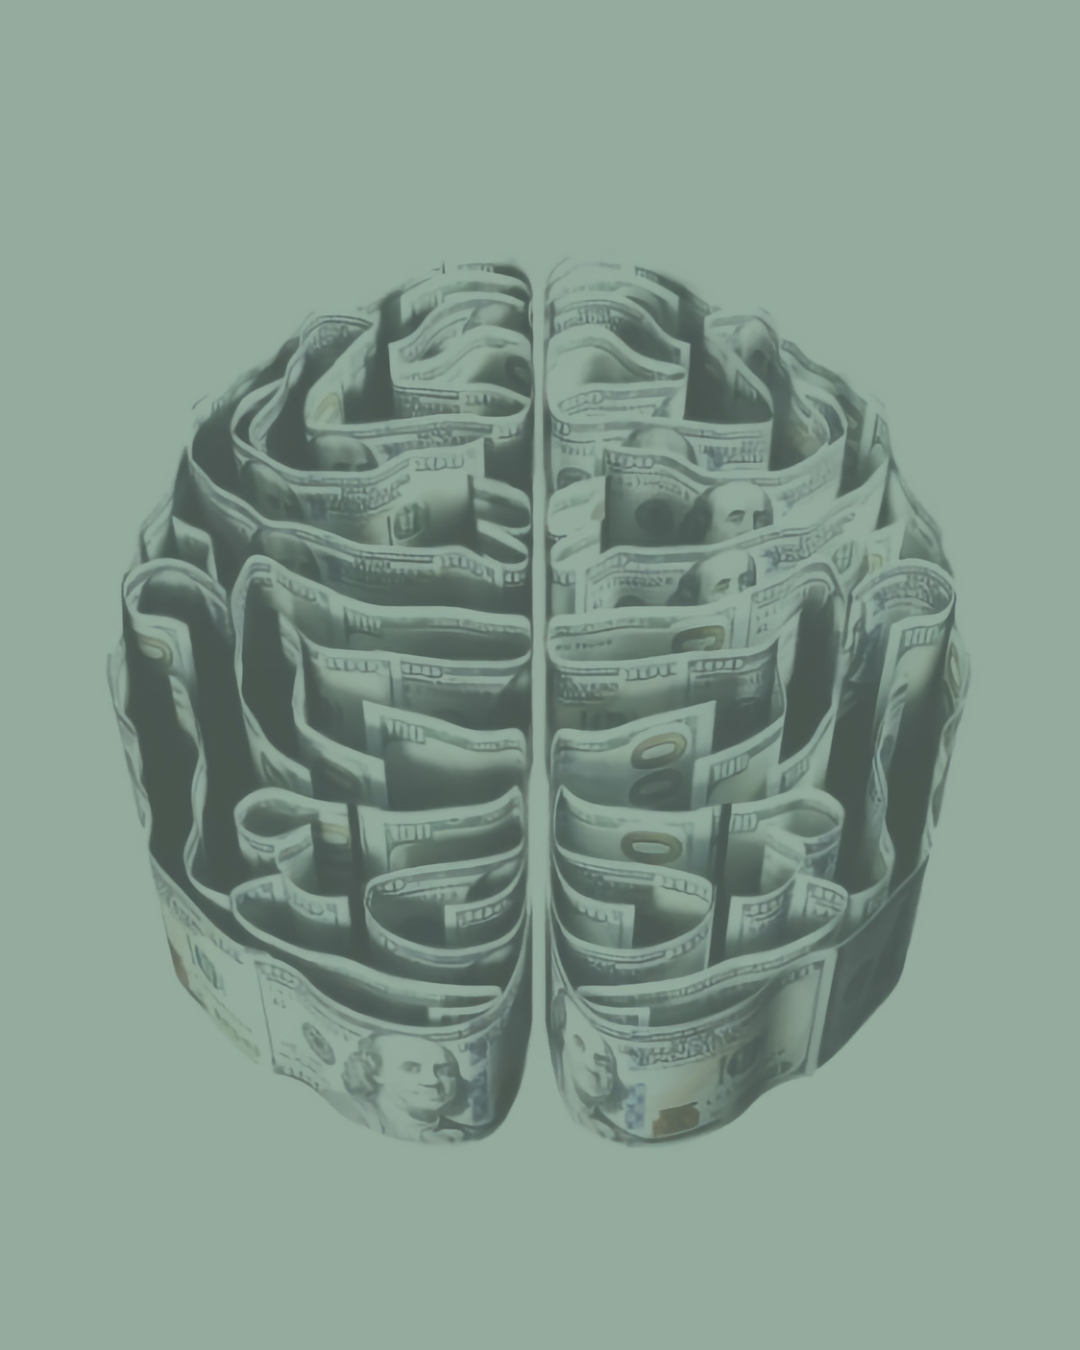 This image represents neurodivergence with a cartoon of a brain on a green background looking almost like a maze.